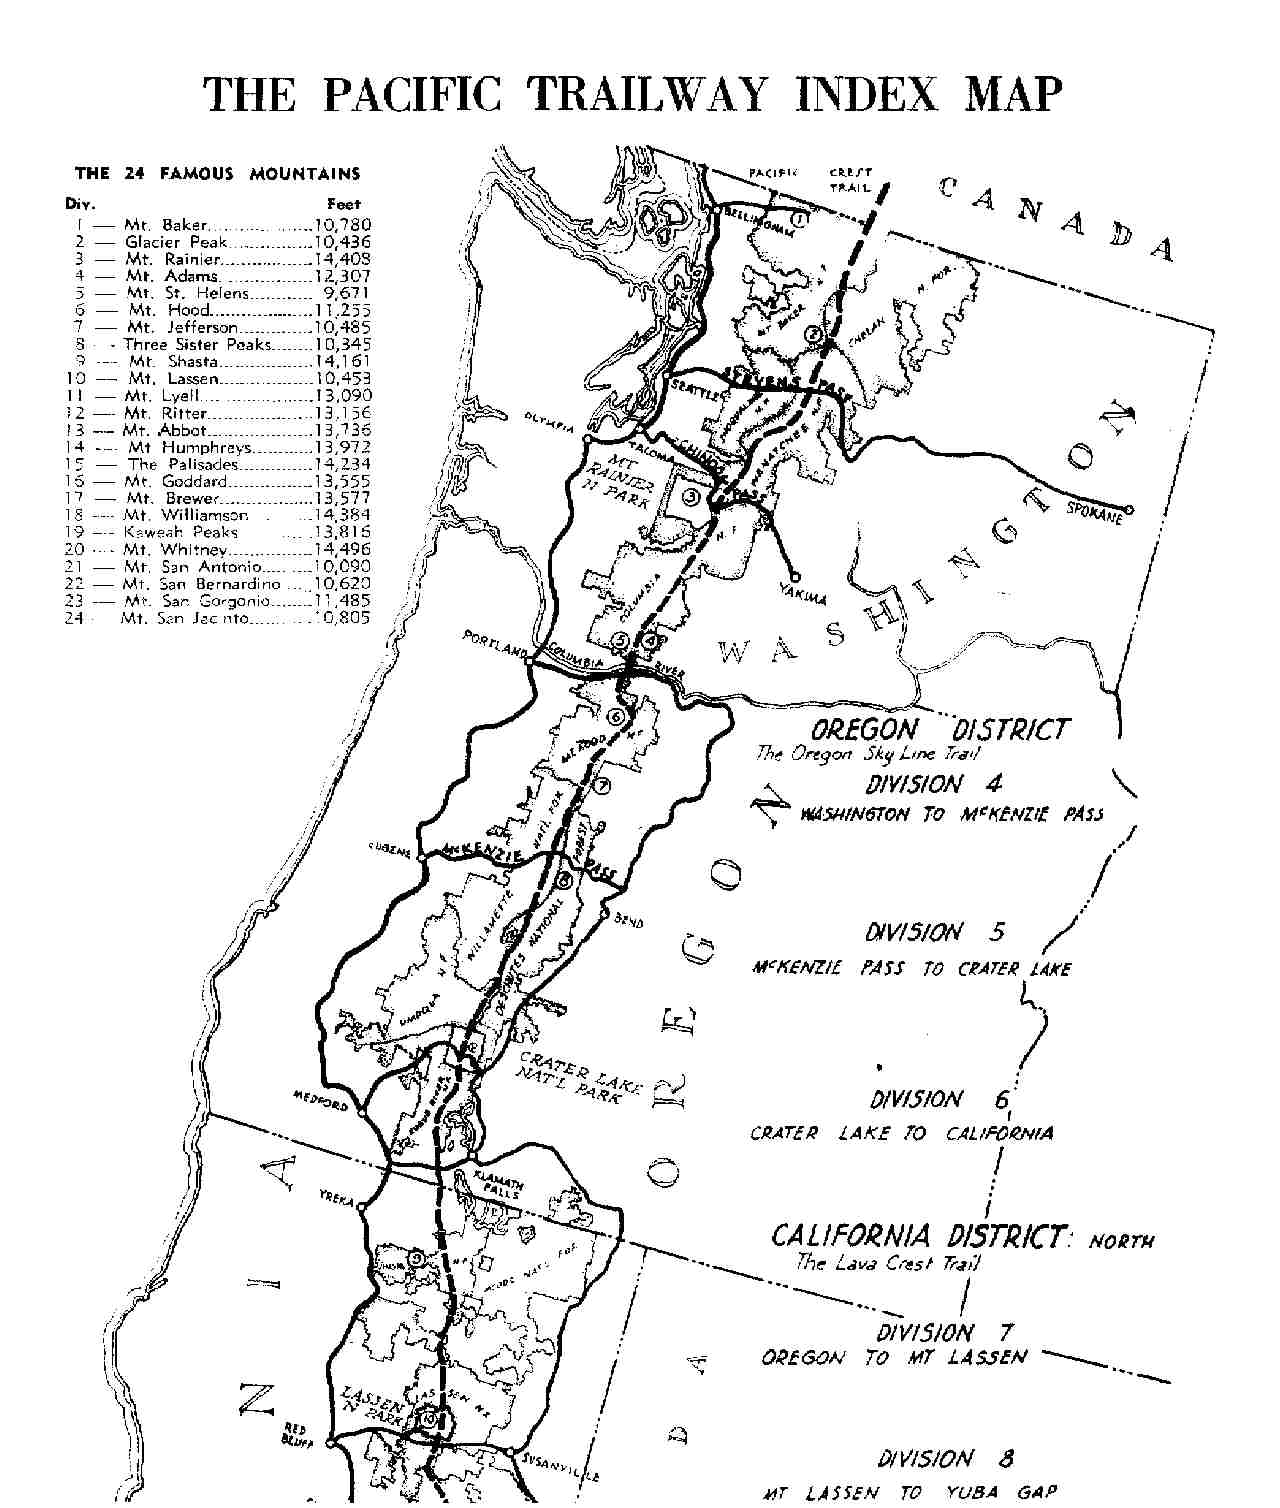 From The Rogers Collection a 1945 map of the Pacific Crest Trail